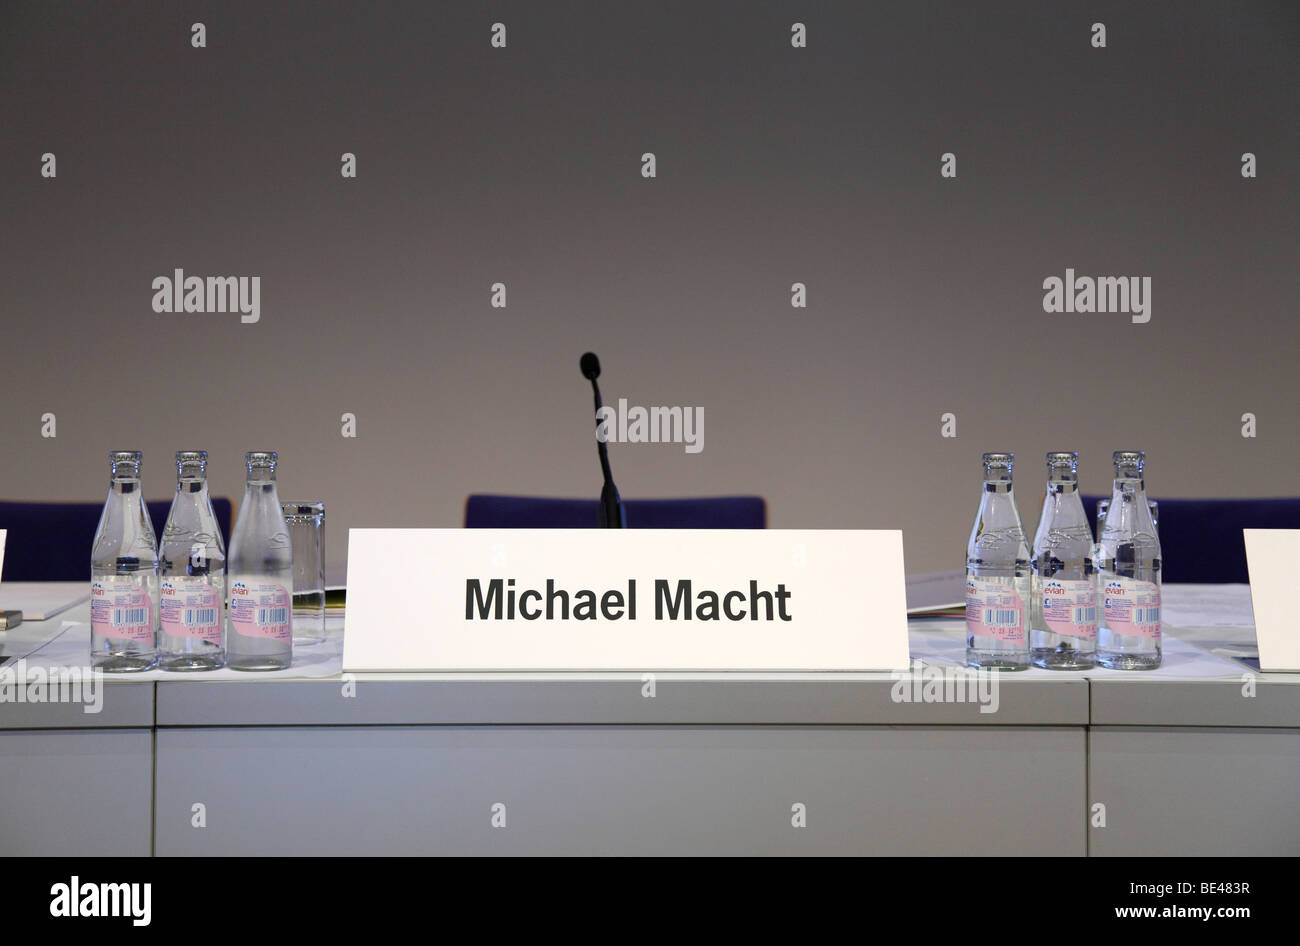 63th International Motor Show ( IAA ): Empty chair of Michael Macht, CEO of the Porsche SE, in a conference room - Stock Image